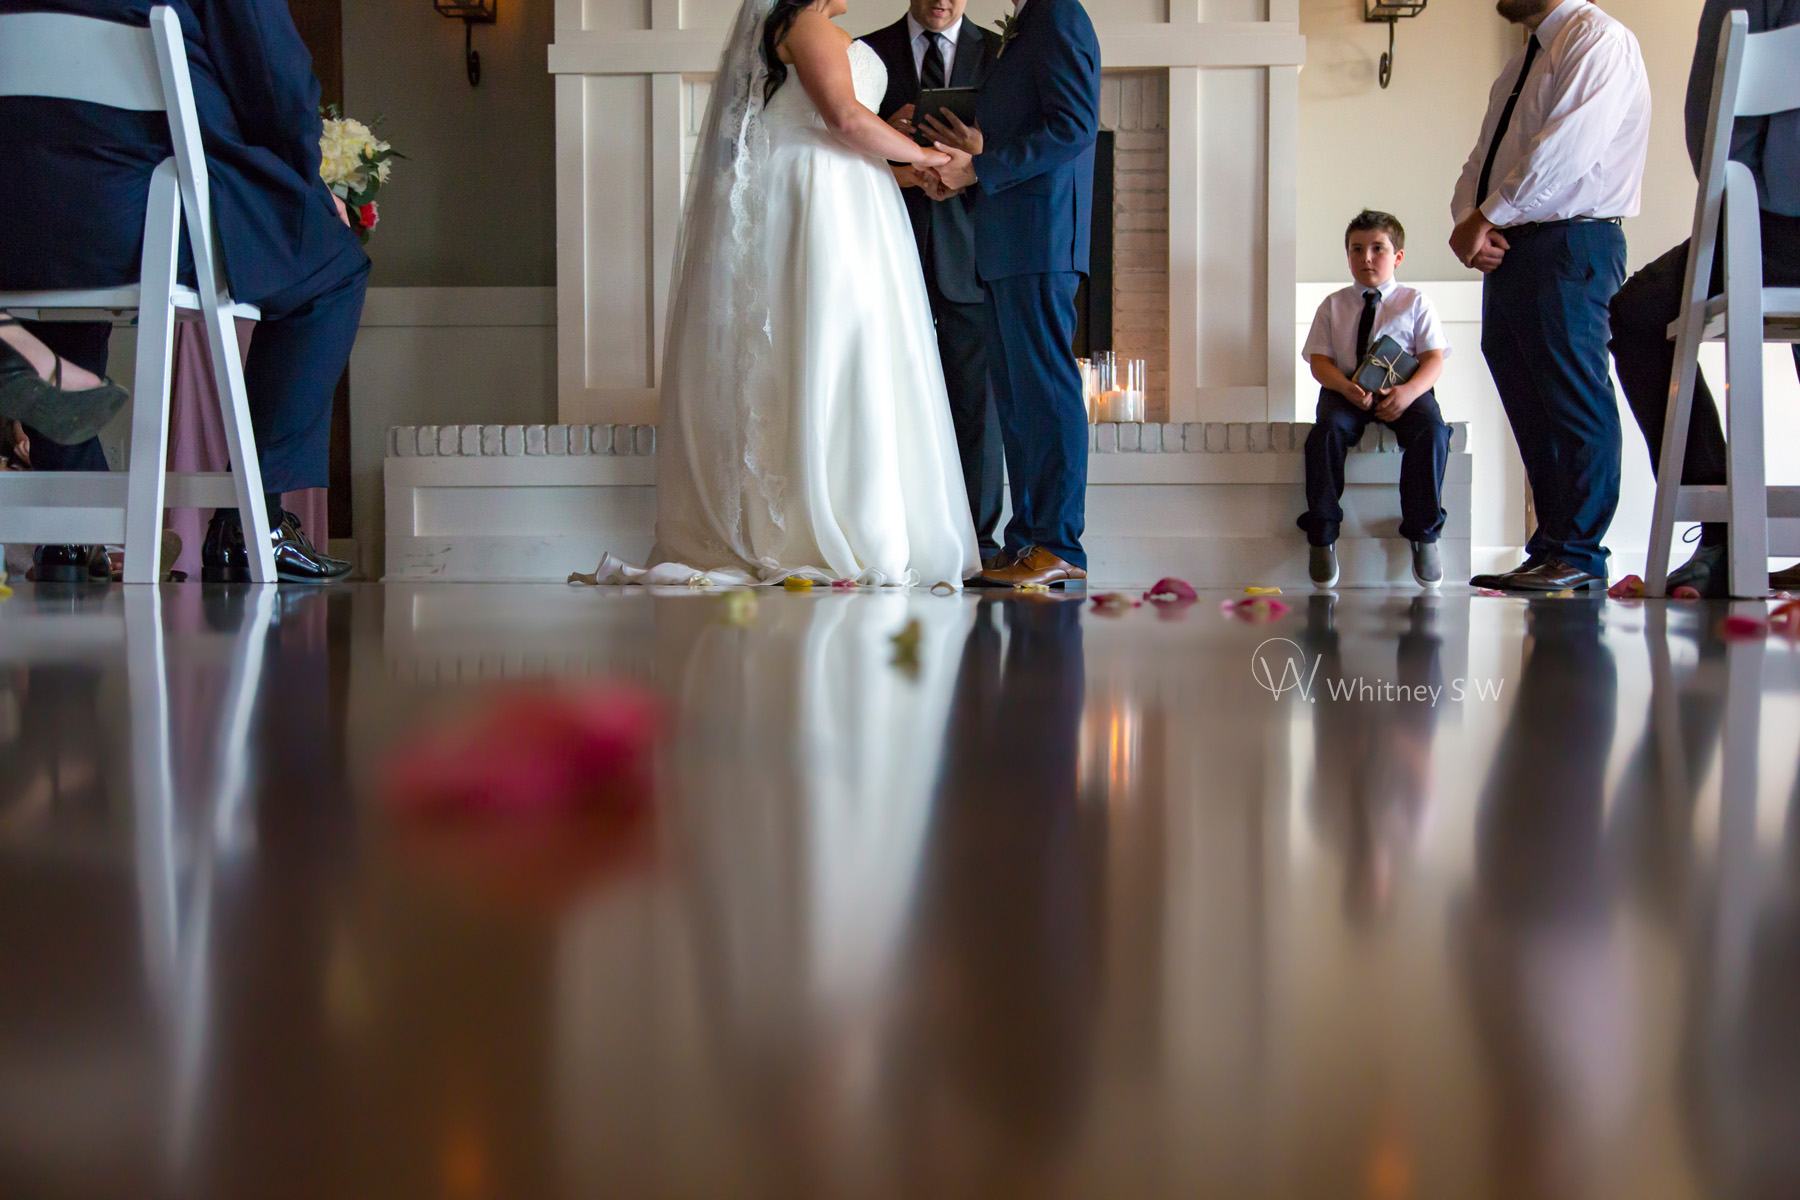 SimpsonFalinWedding_Photography by Whitney S Williams (152).jpg